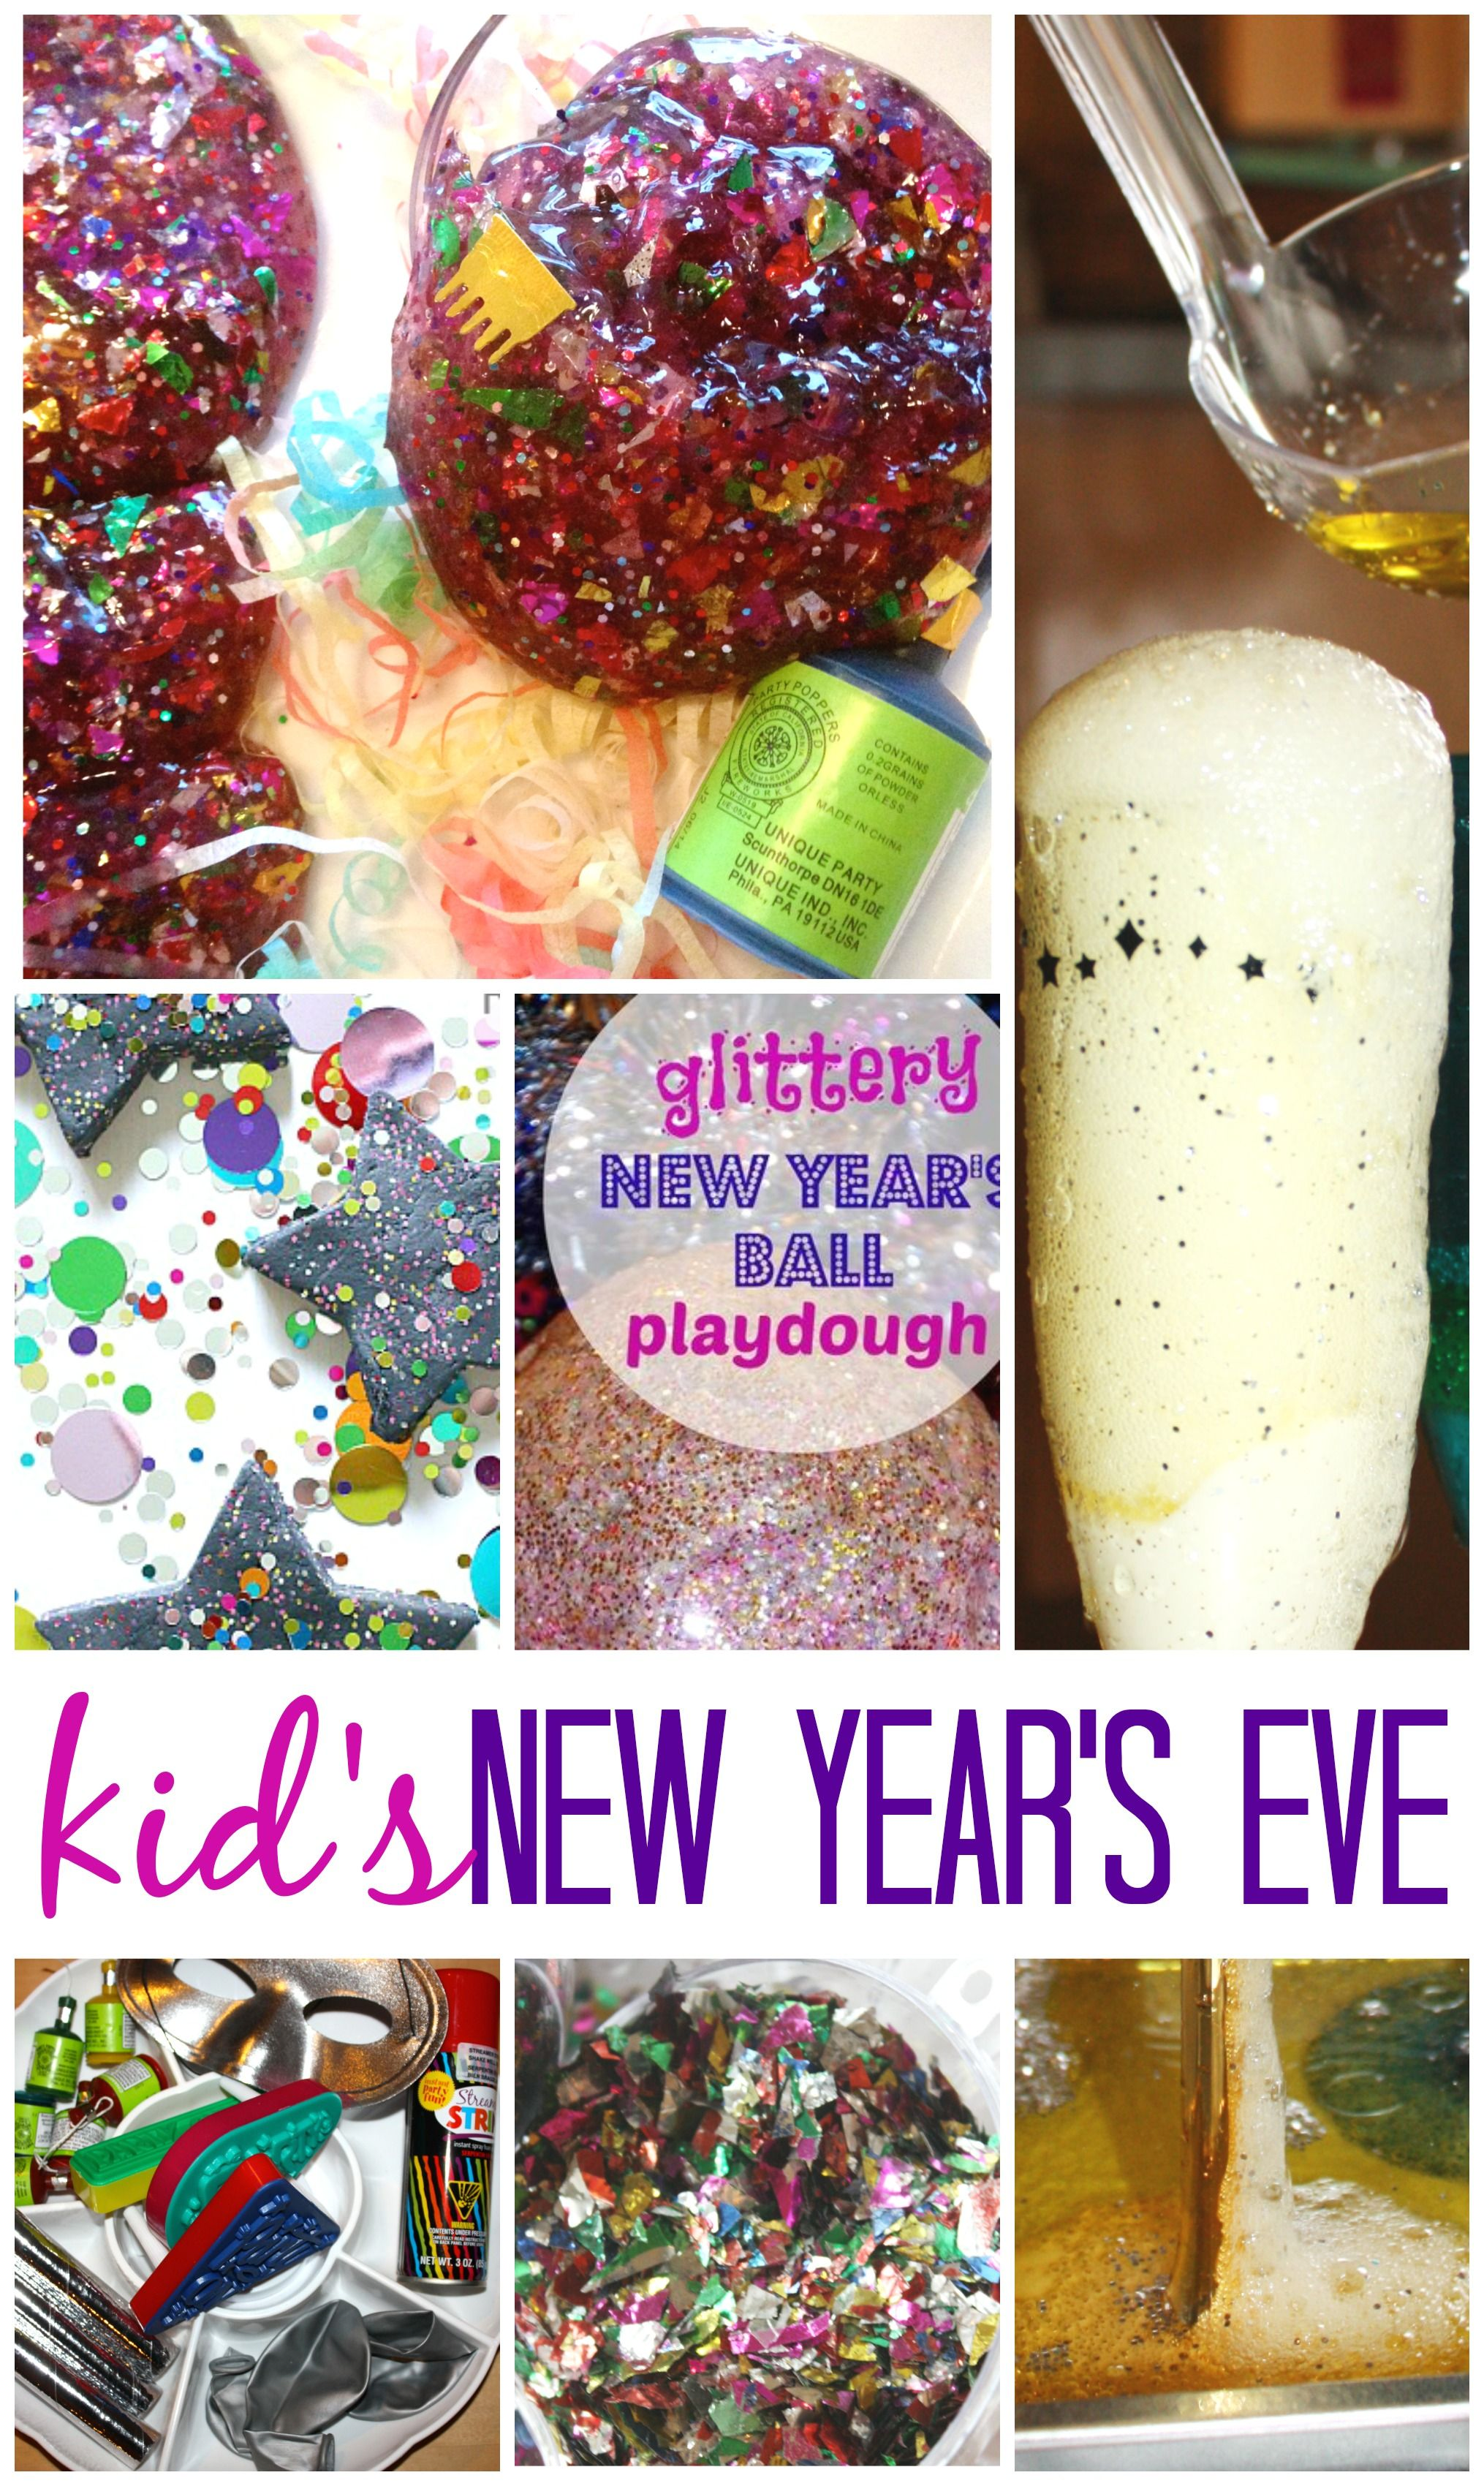 Kids new years eve party ideas and activities for new for Fun new years eve party ideas